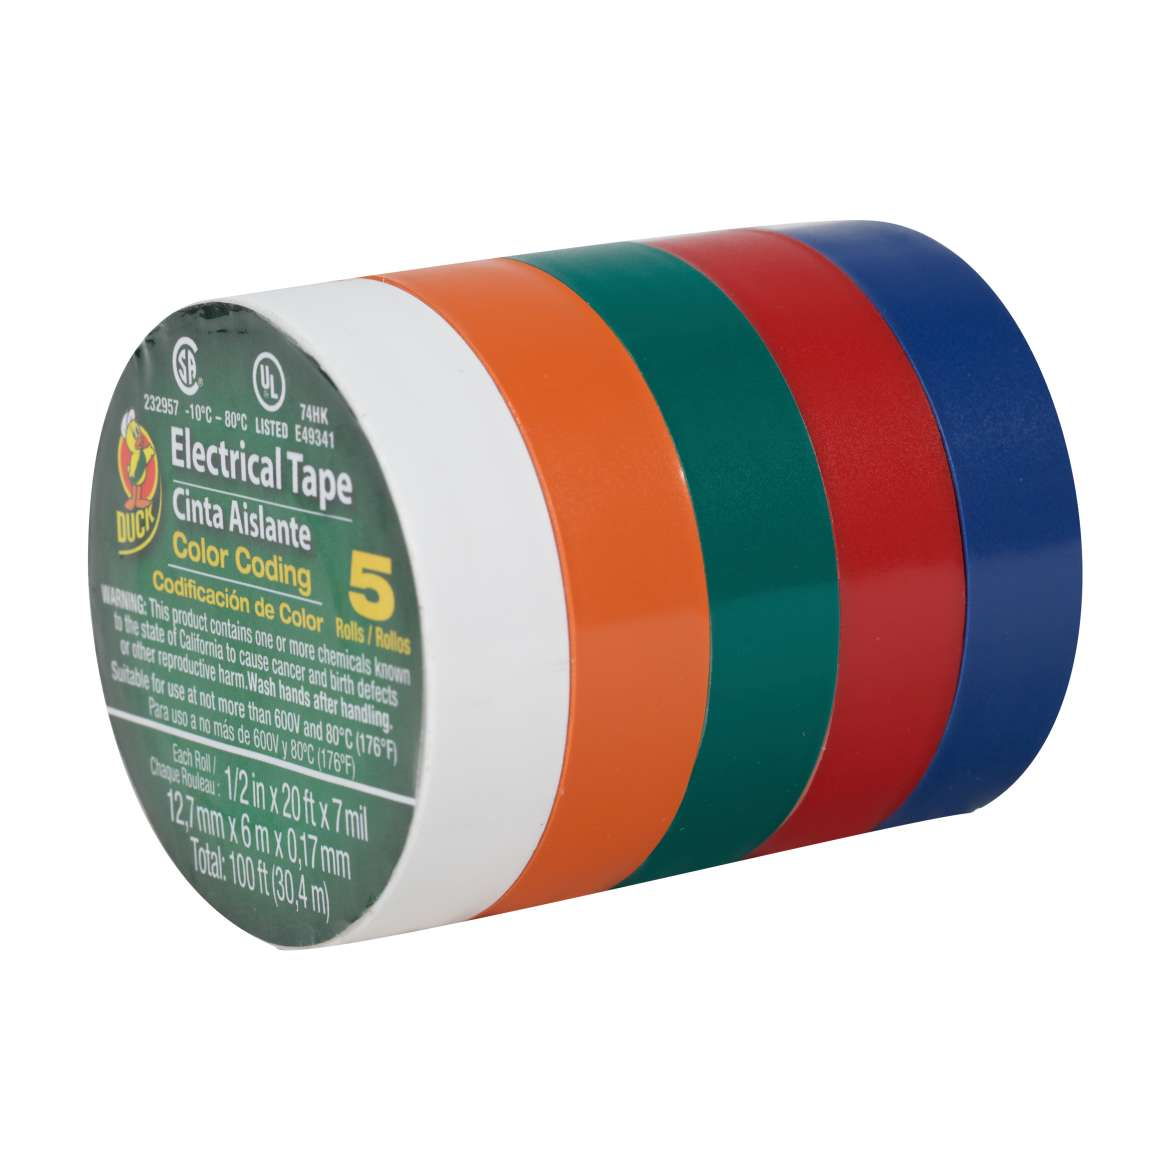 Duck® Brand Professional Color Coding Electrical Tape - Multi-Color, 5 pk, .5 in. x 20 ft. x 7 mil. Image